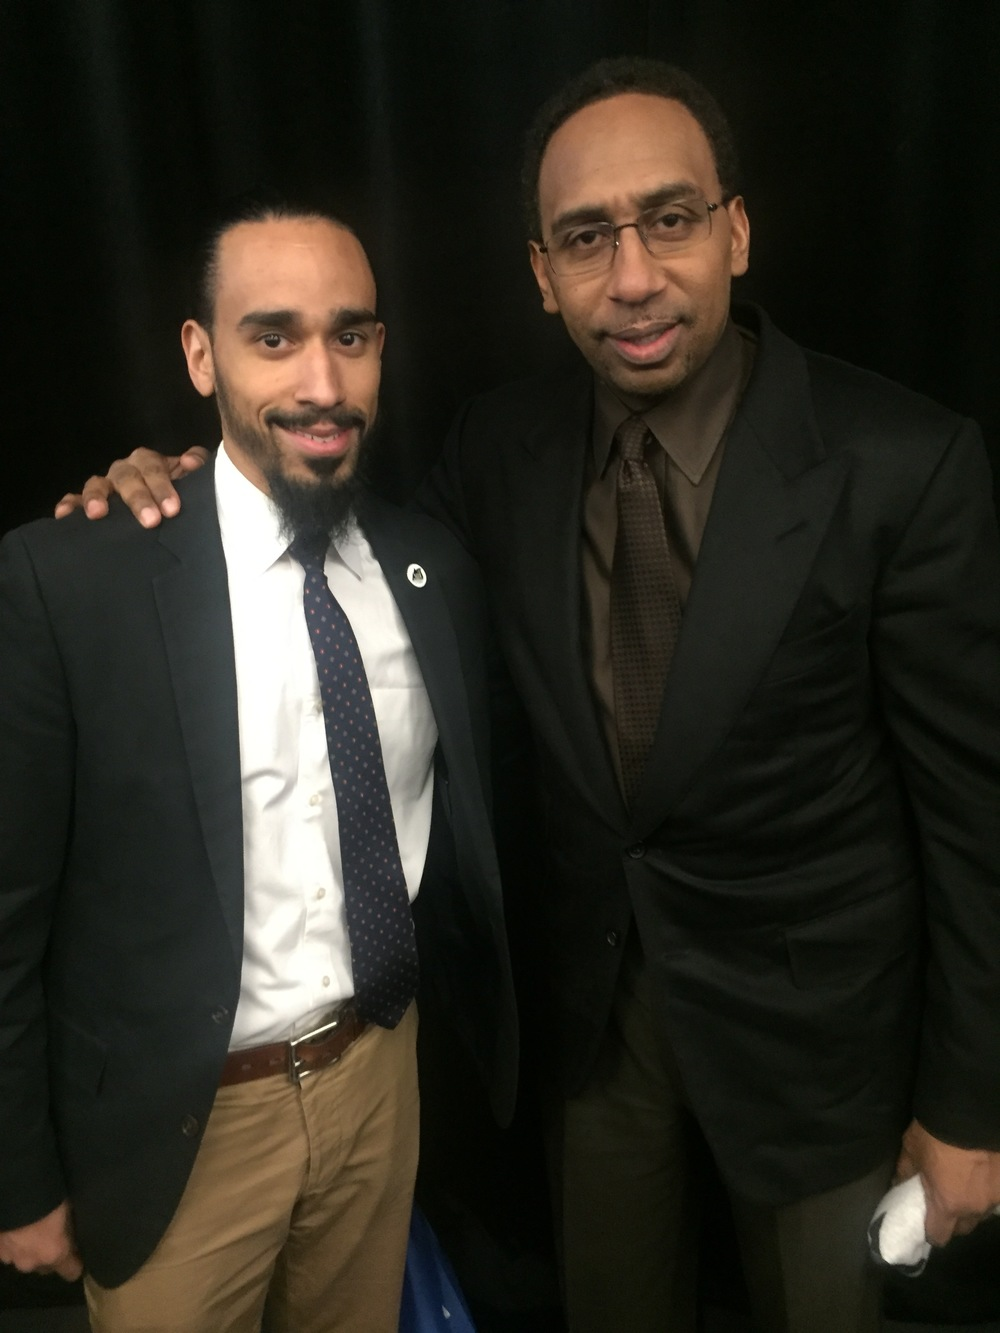 ESPN Analyst, Stephen A. Smith